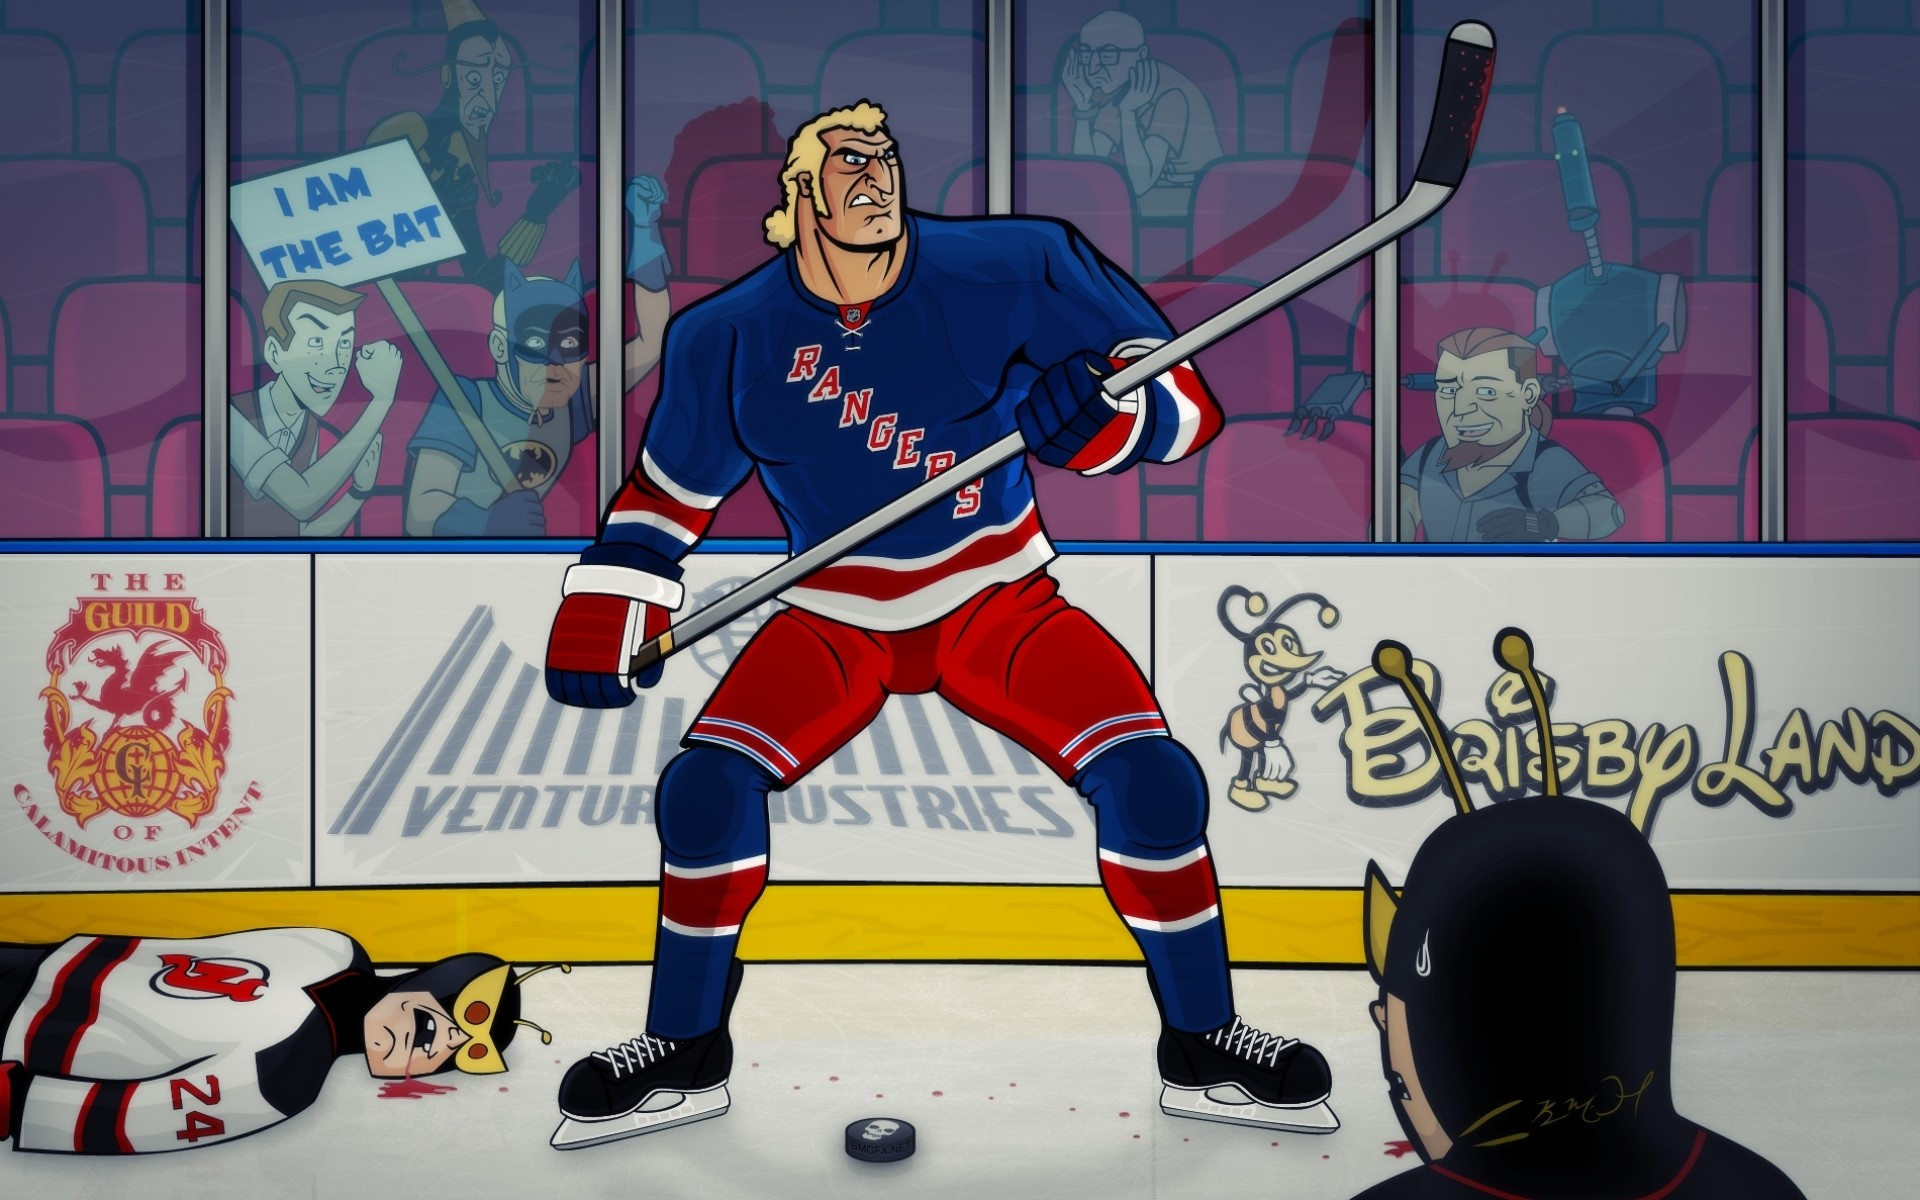 1920x1080 Ny Rangers Wallpaper Fresh Texas Rangers Wallpaper for iPhone 6 Impremedia